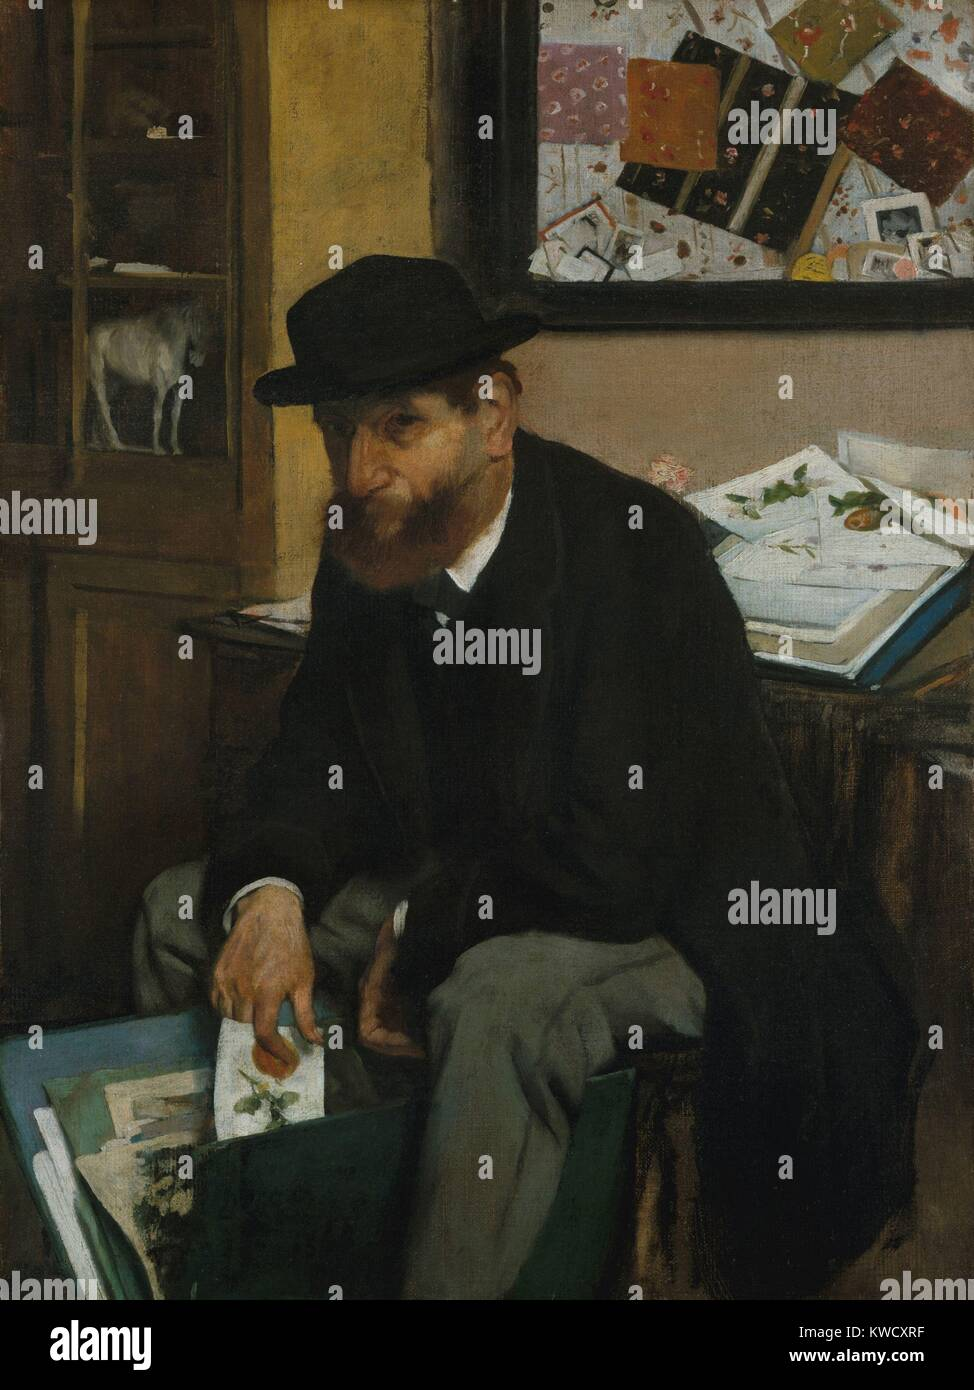 The Collector of Prints, by Edgar Degas, 1866, French impressionist painting, oil on canvas. Informally posed as - Stock Image